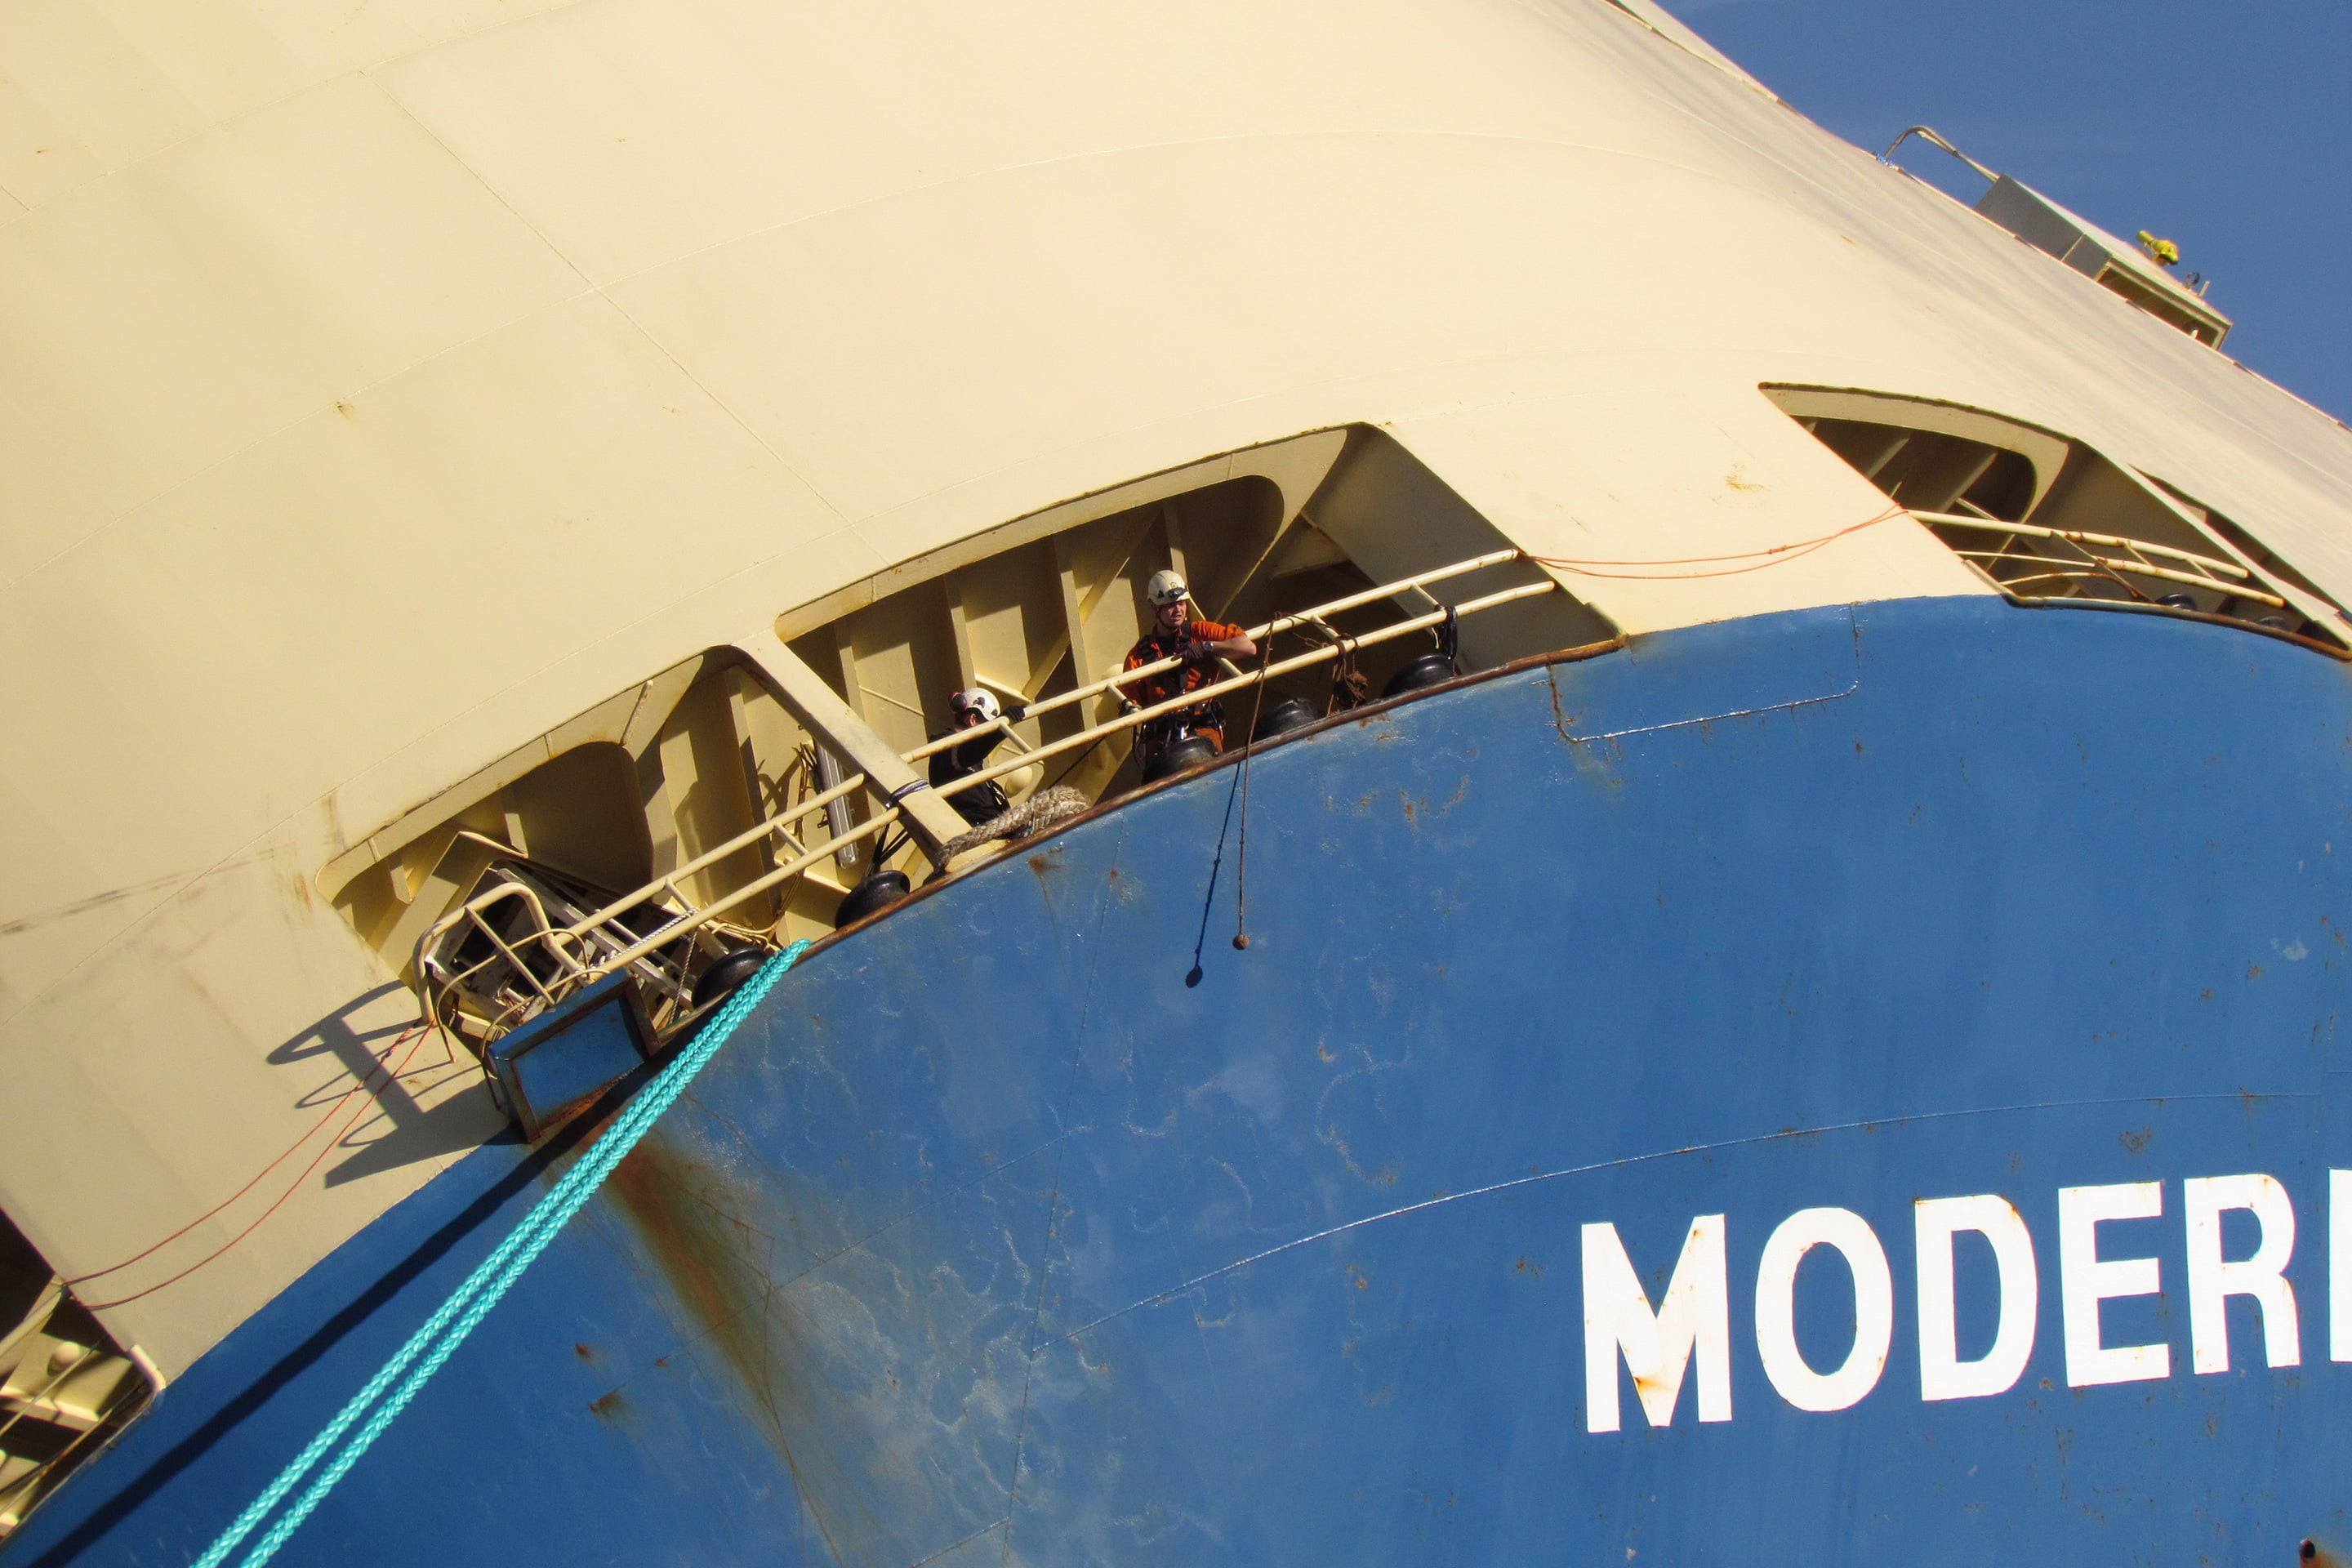 The salvage team on board the Modern Express